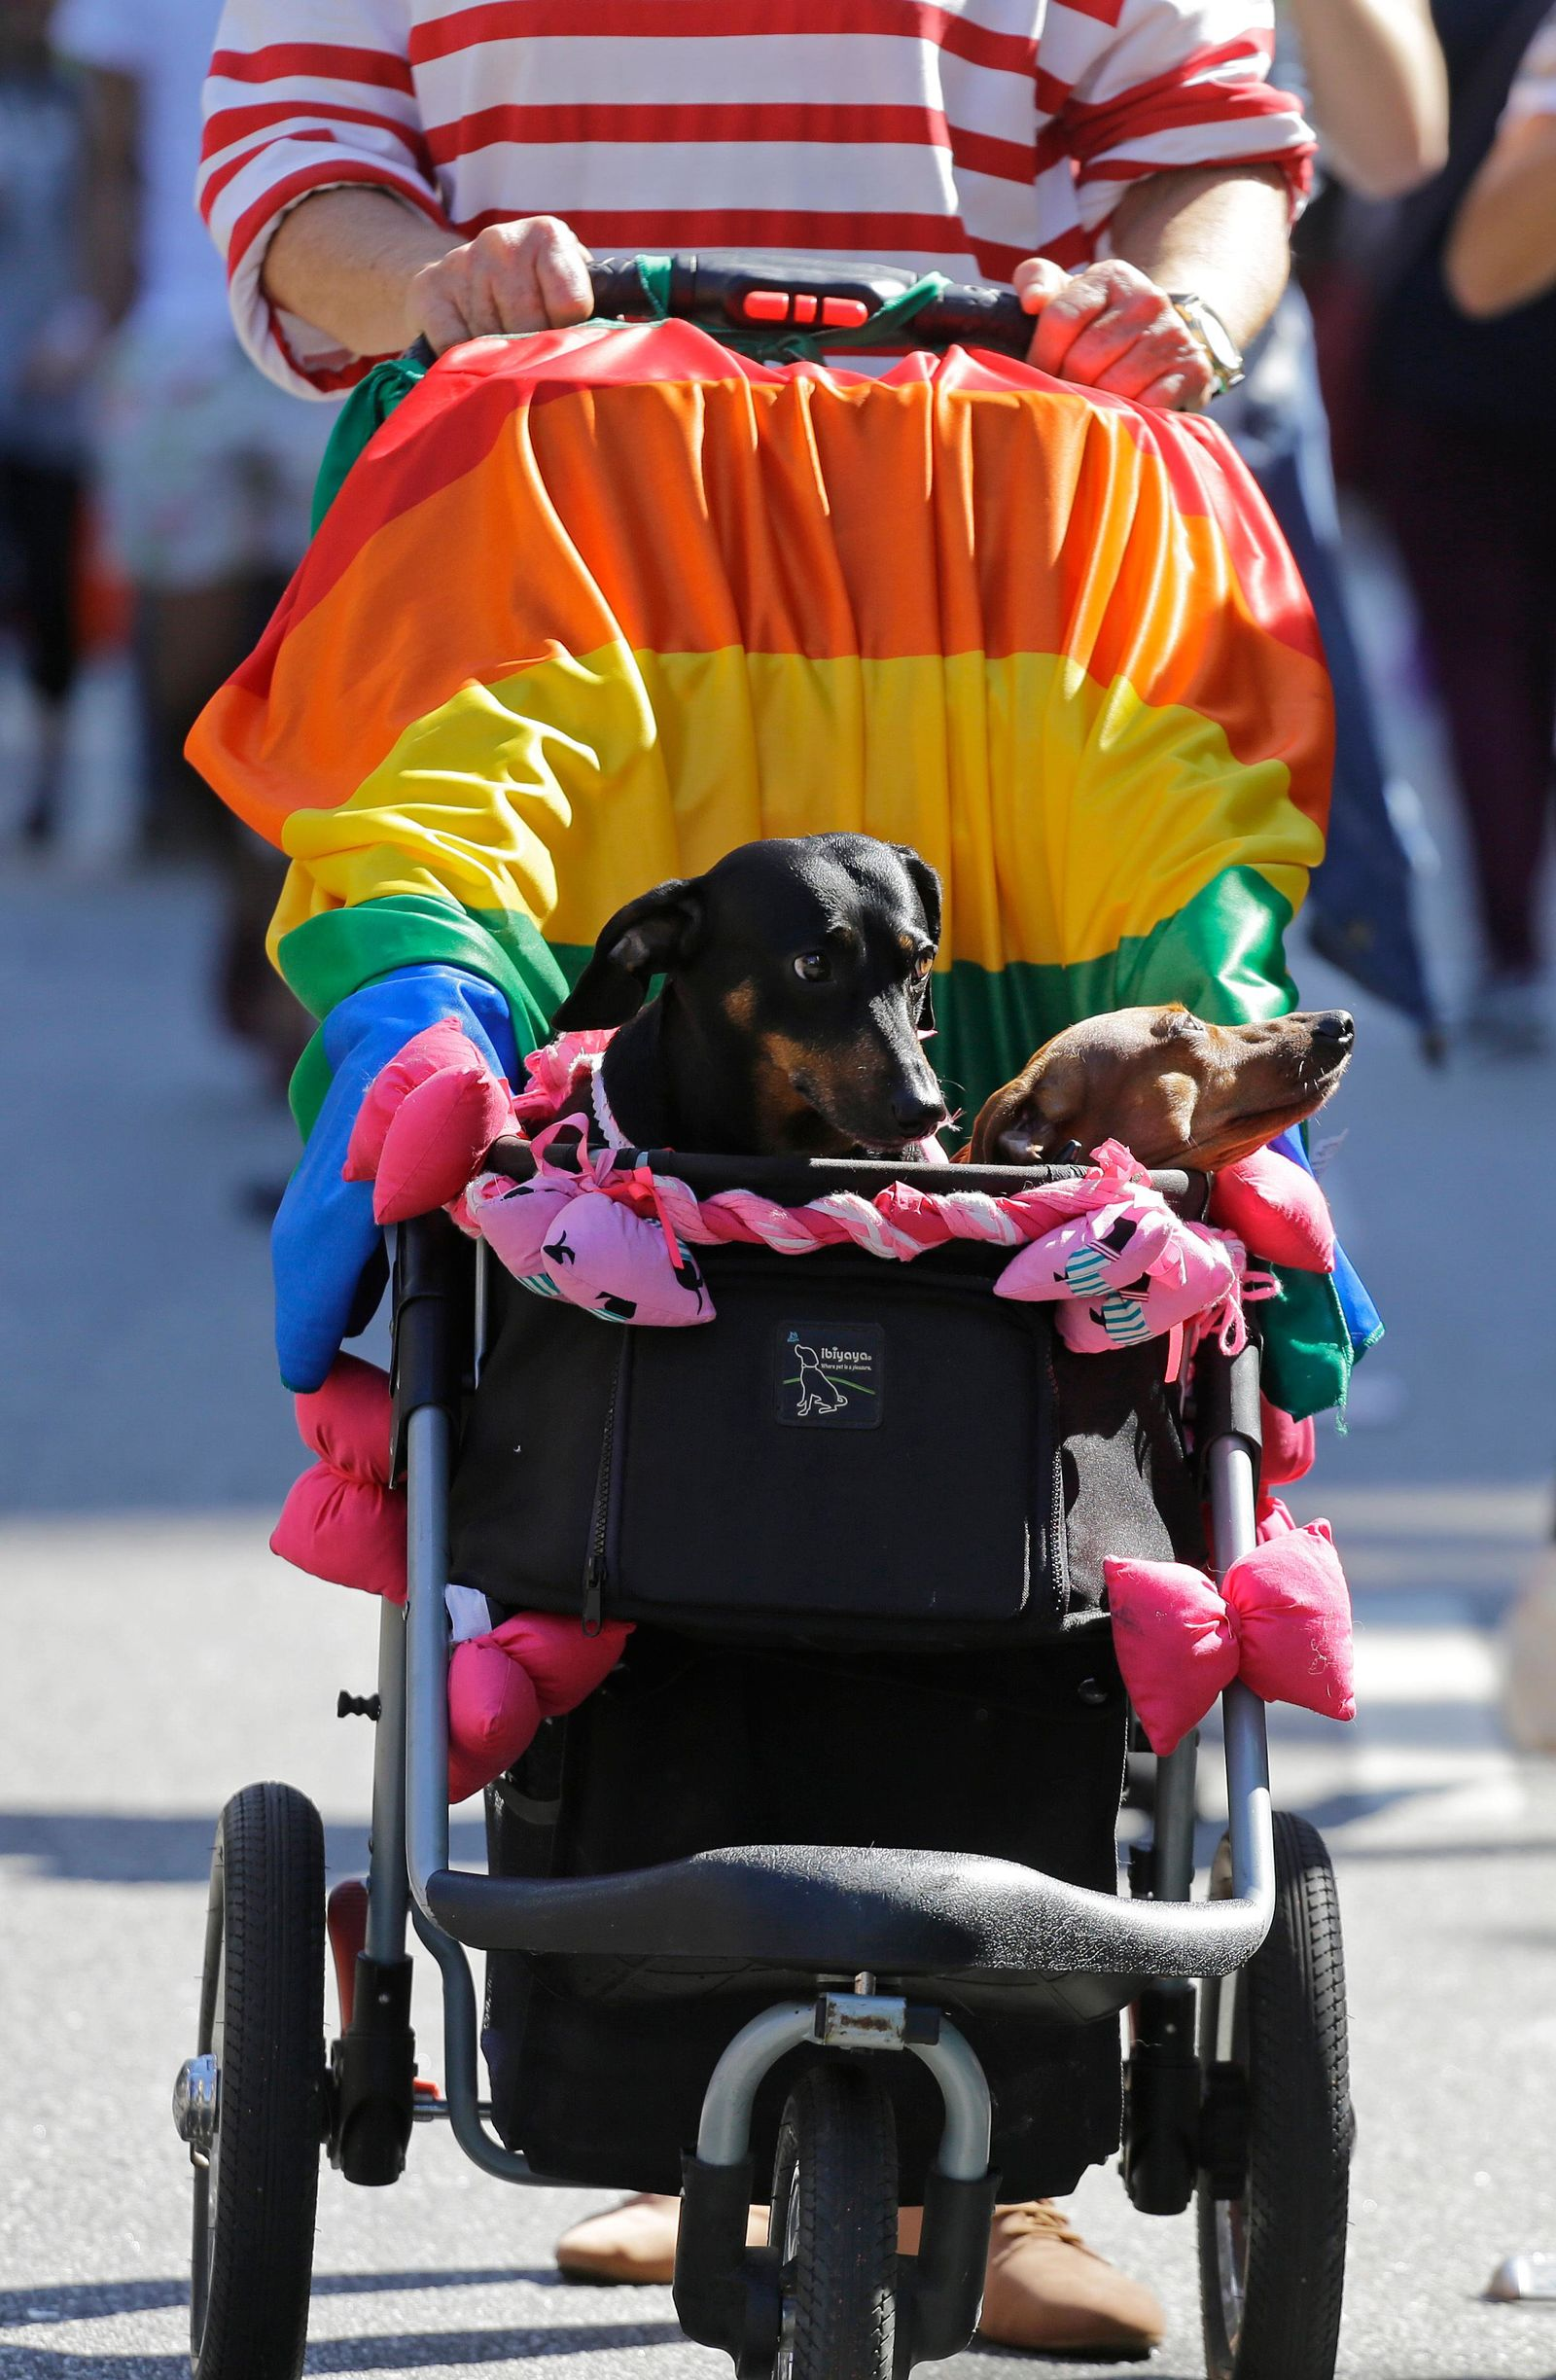 Dogs ride in a baby carriage decorated with a rainbow flag during the annual gay pride parade along Paulista avenue in Sao Paulo, Brazil, Sunday, June 23, 2019. (AP Photo/Nelson Antoine)